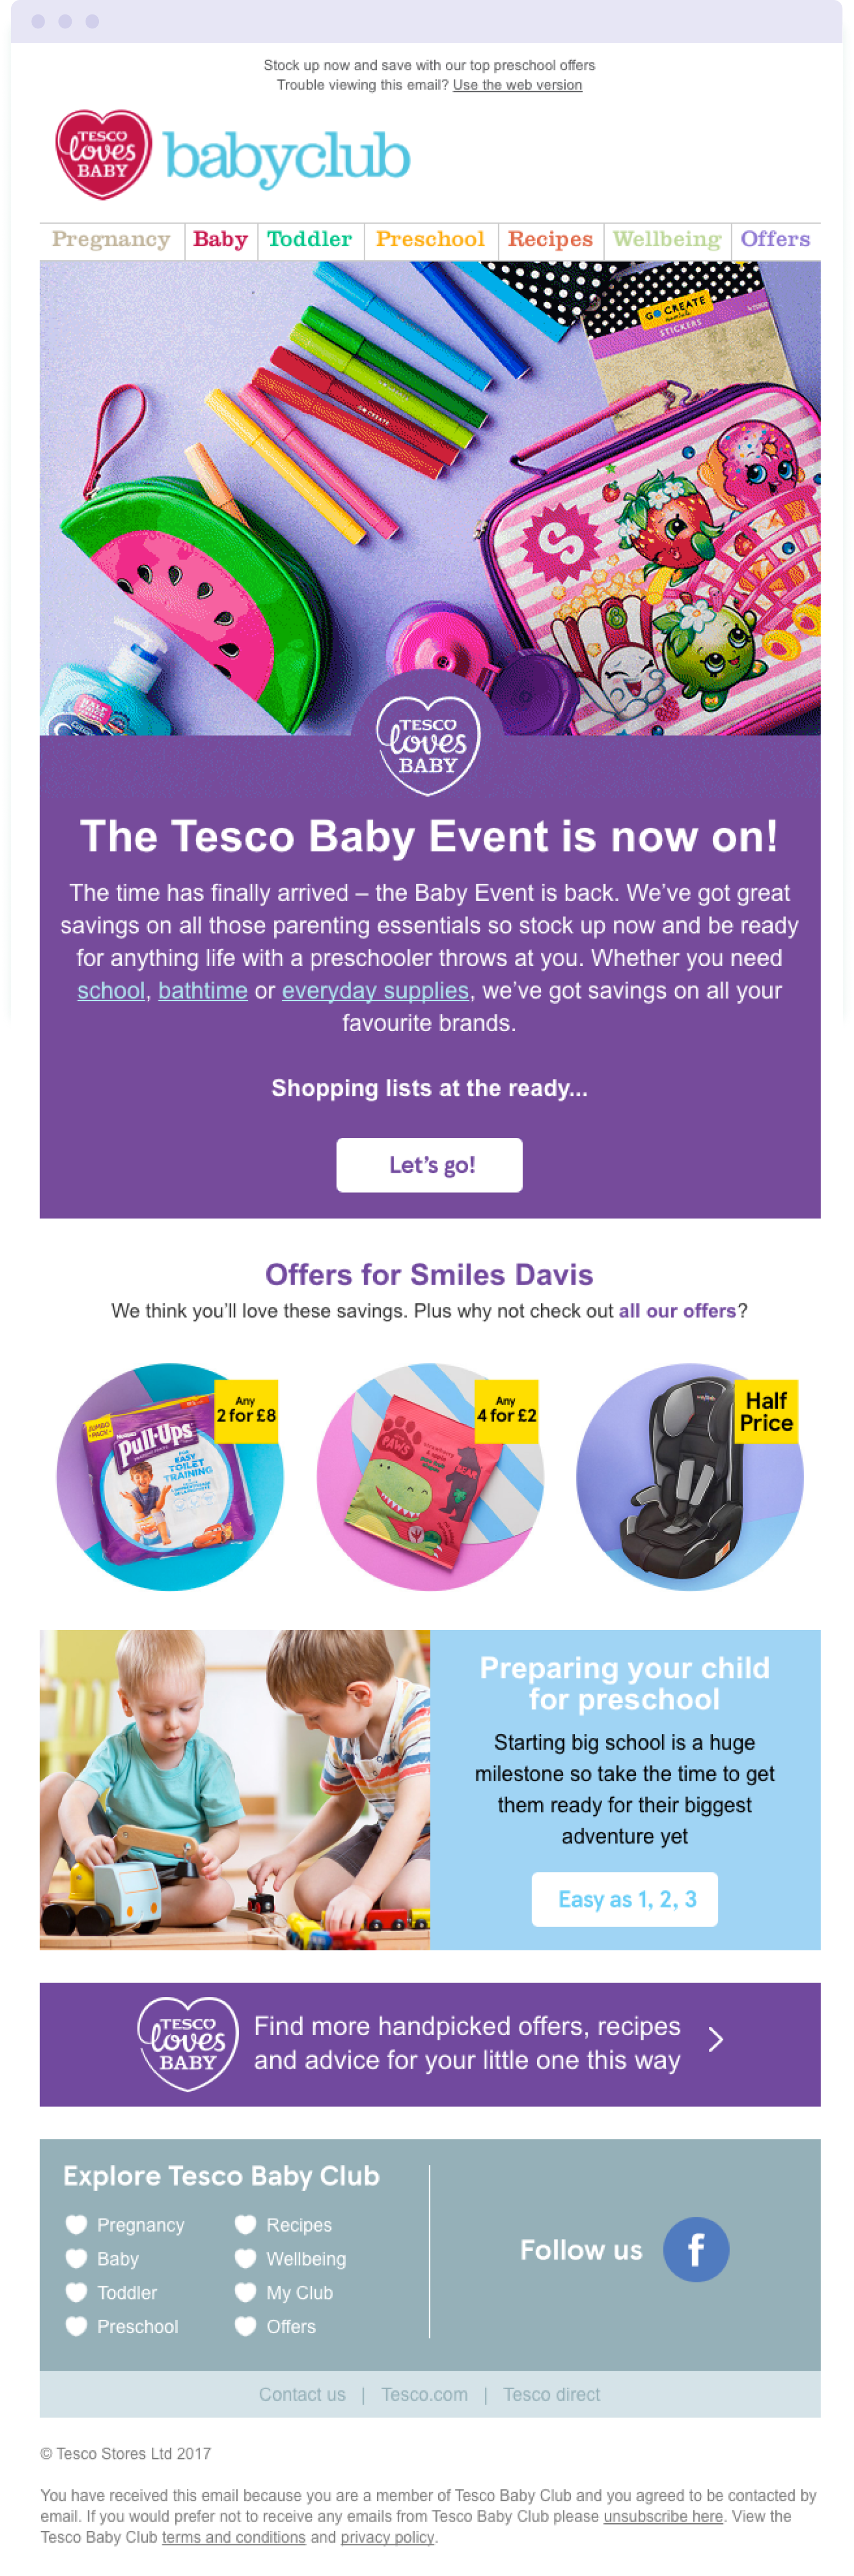 Example of an email using different image sizes to create a strong visual hierarchy